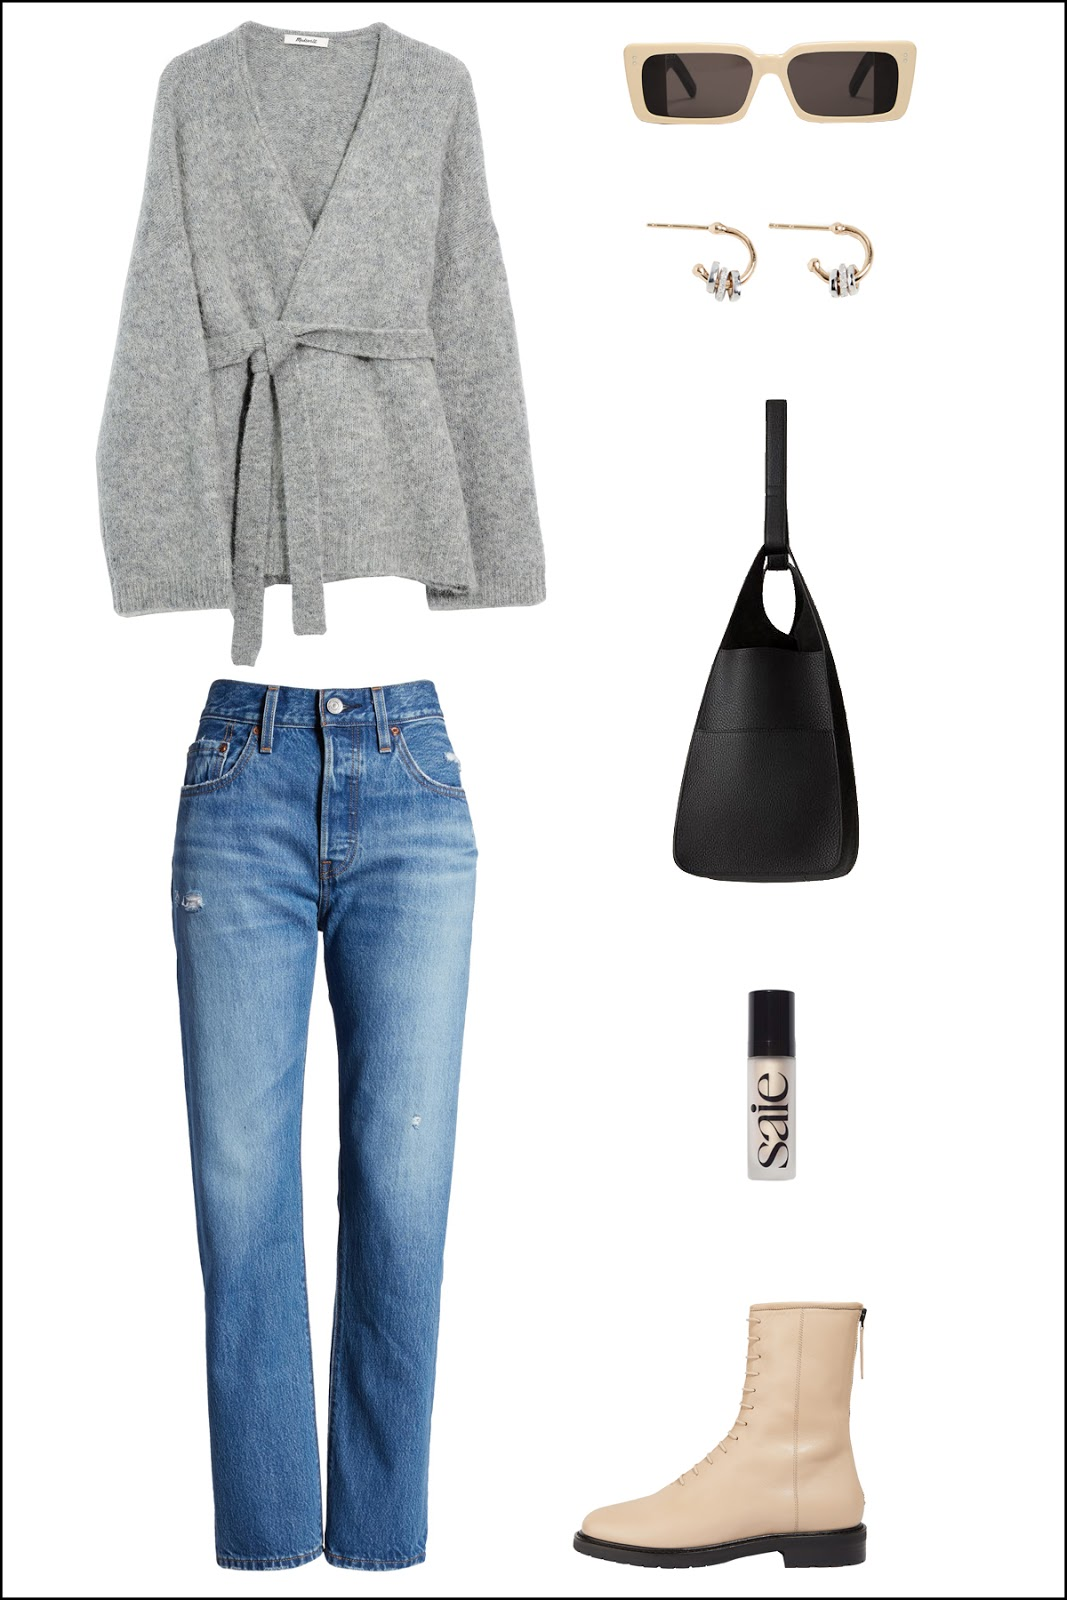 Fresh weekend outfit idea — grey wrap sweater, Gucci rectangle sunglasses, hoop earrings, Cuyana hobo bag, Levi's jeans, Saie glowy super gel, and beige lace-up boots